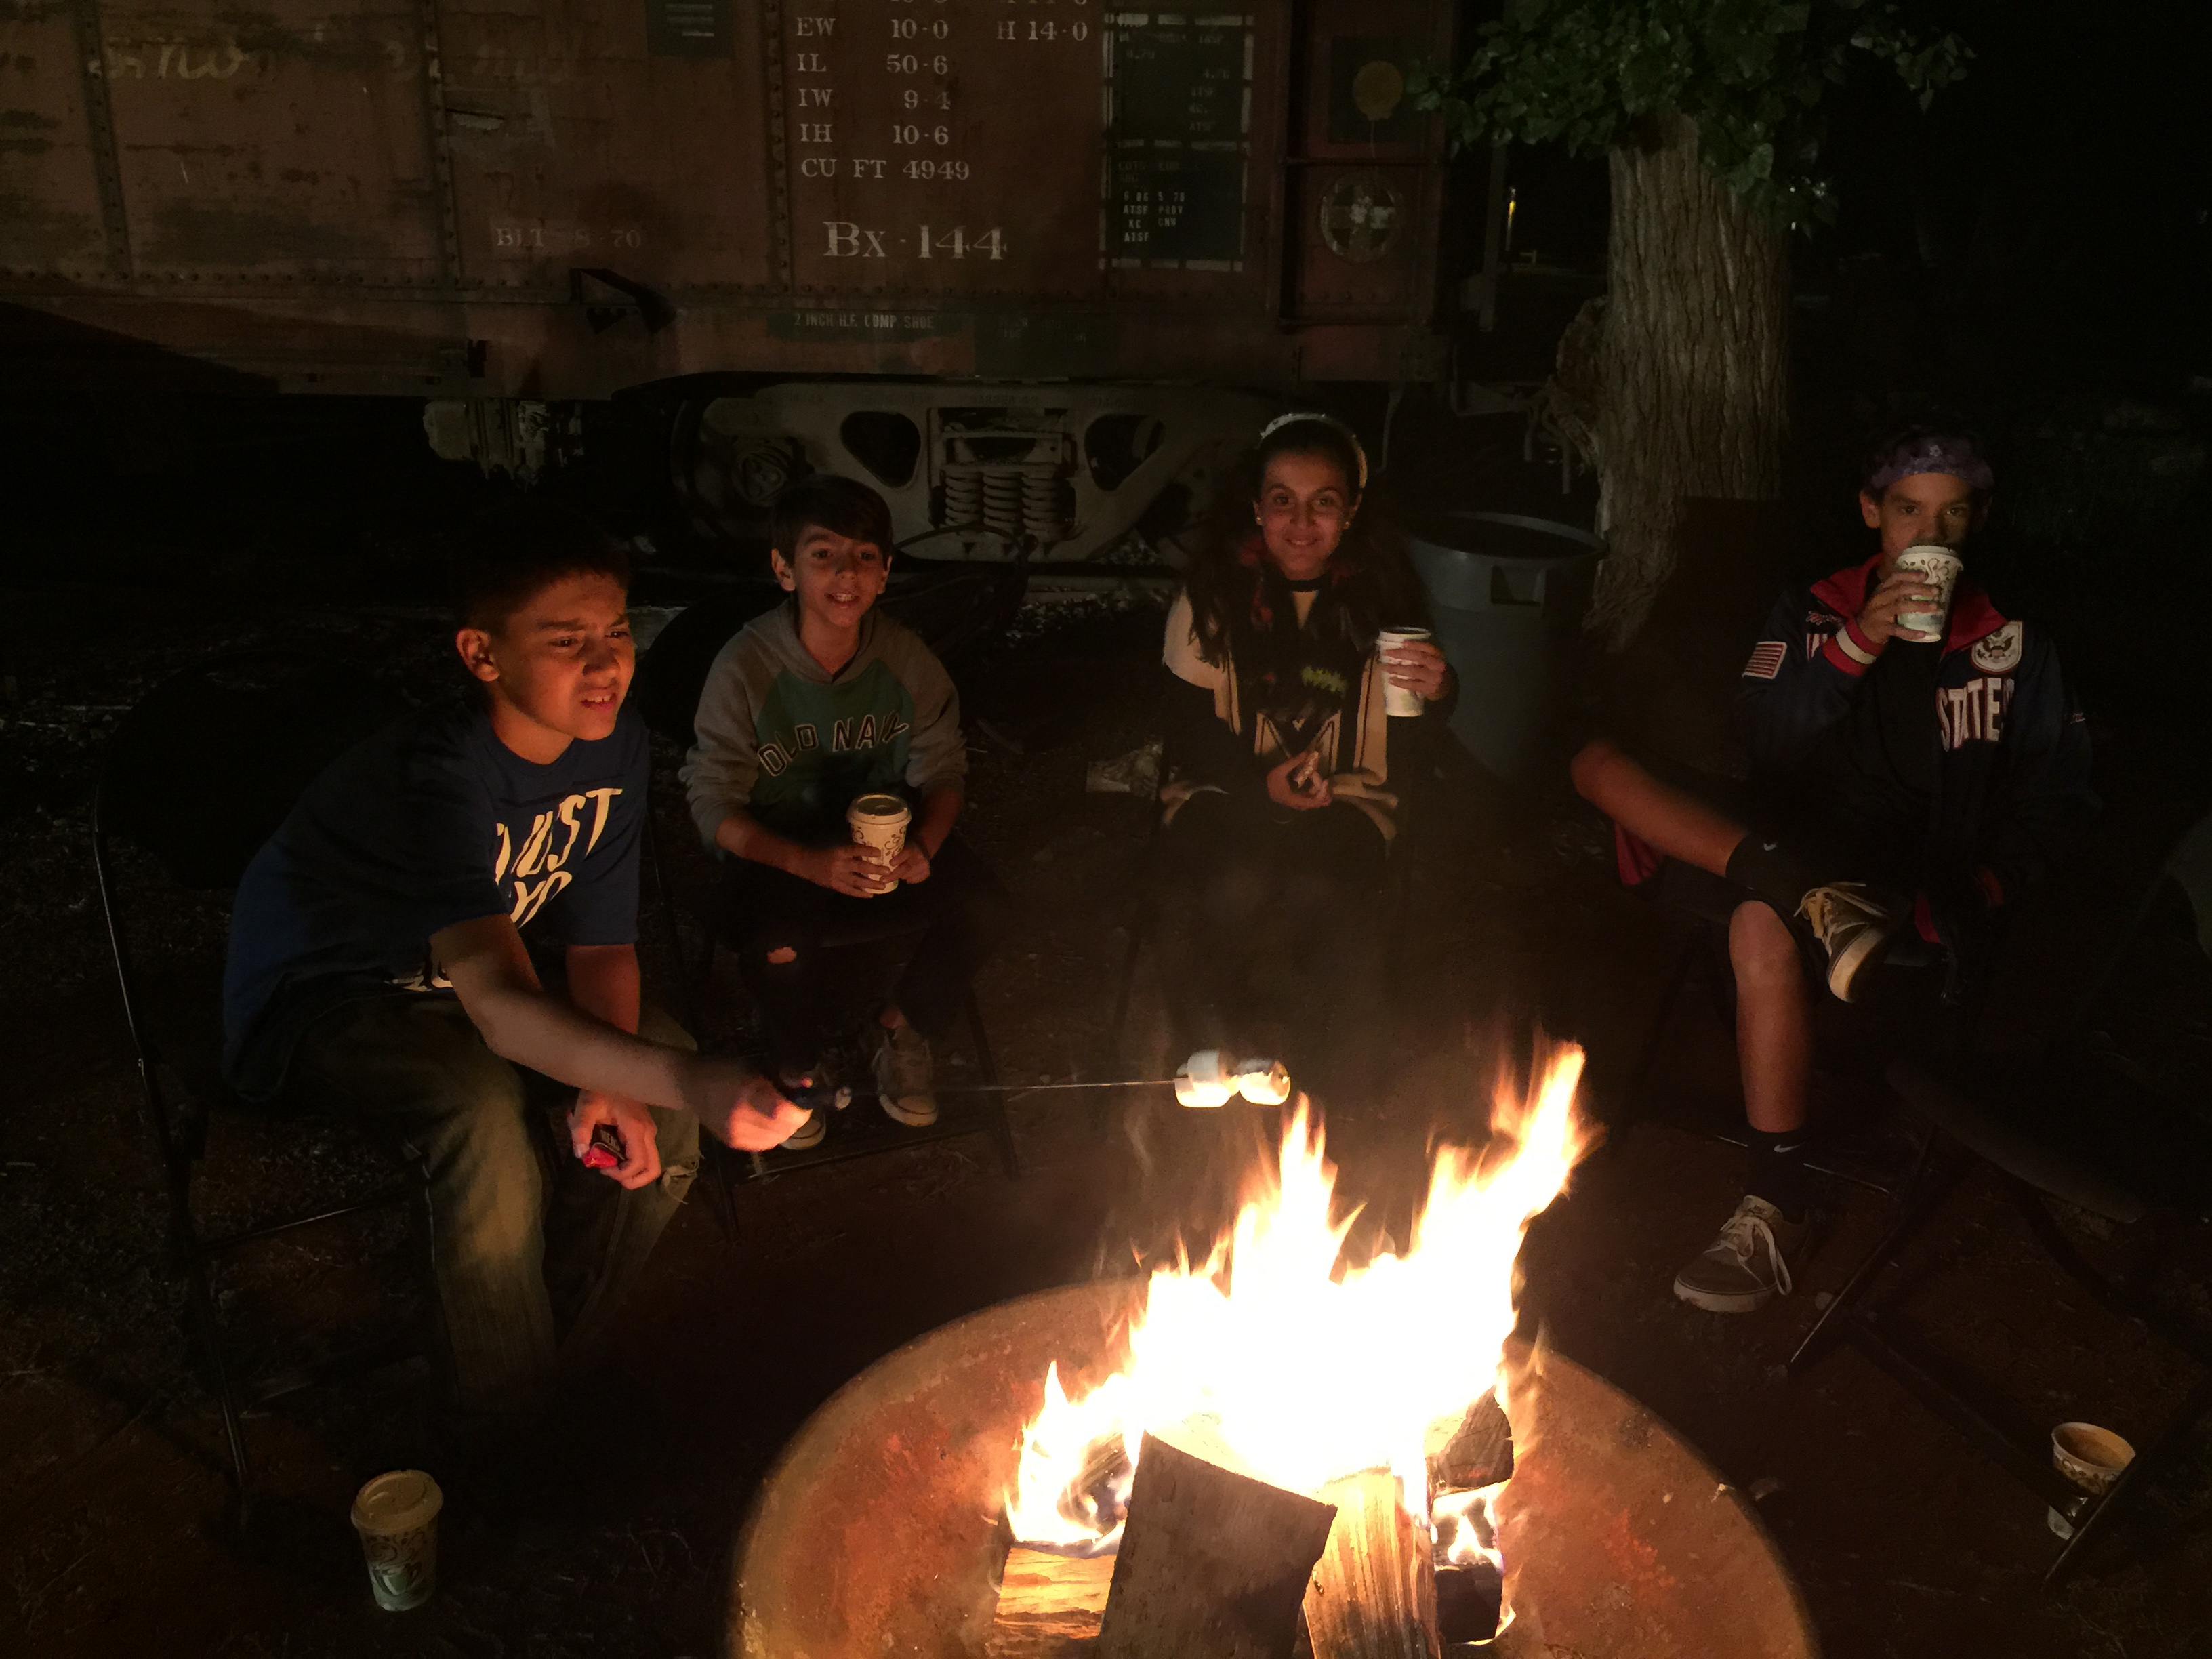 Teen Campout Old Poway Park Community Park